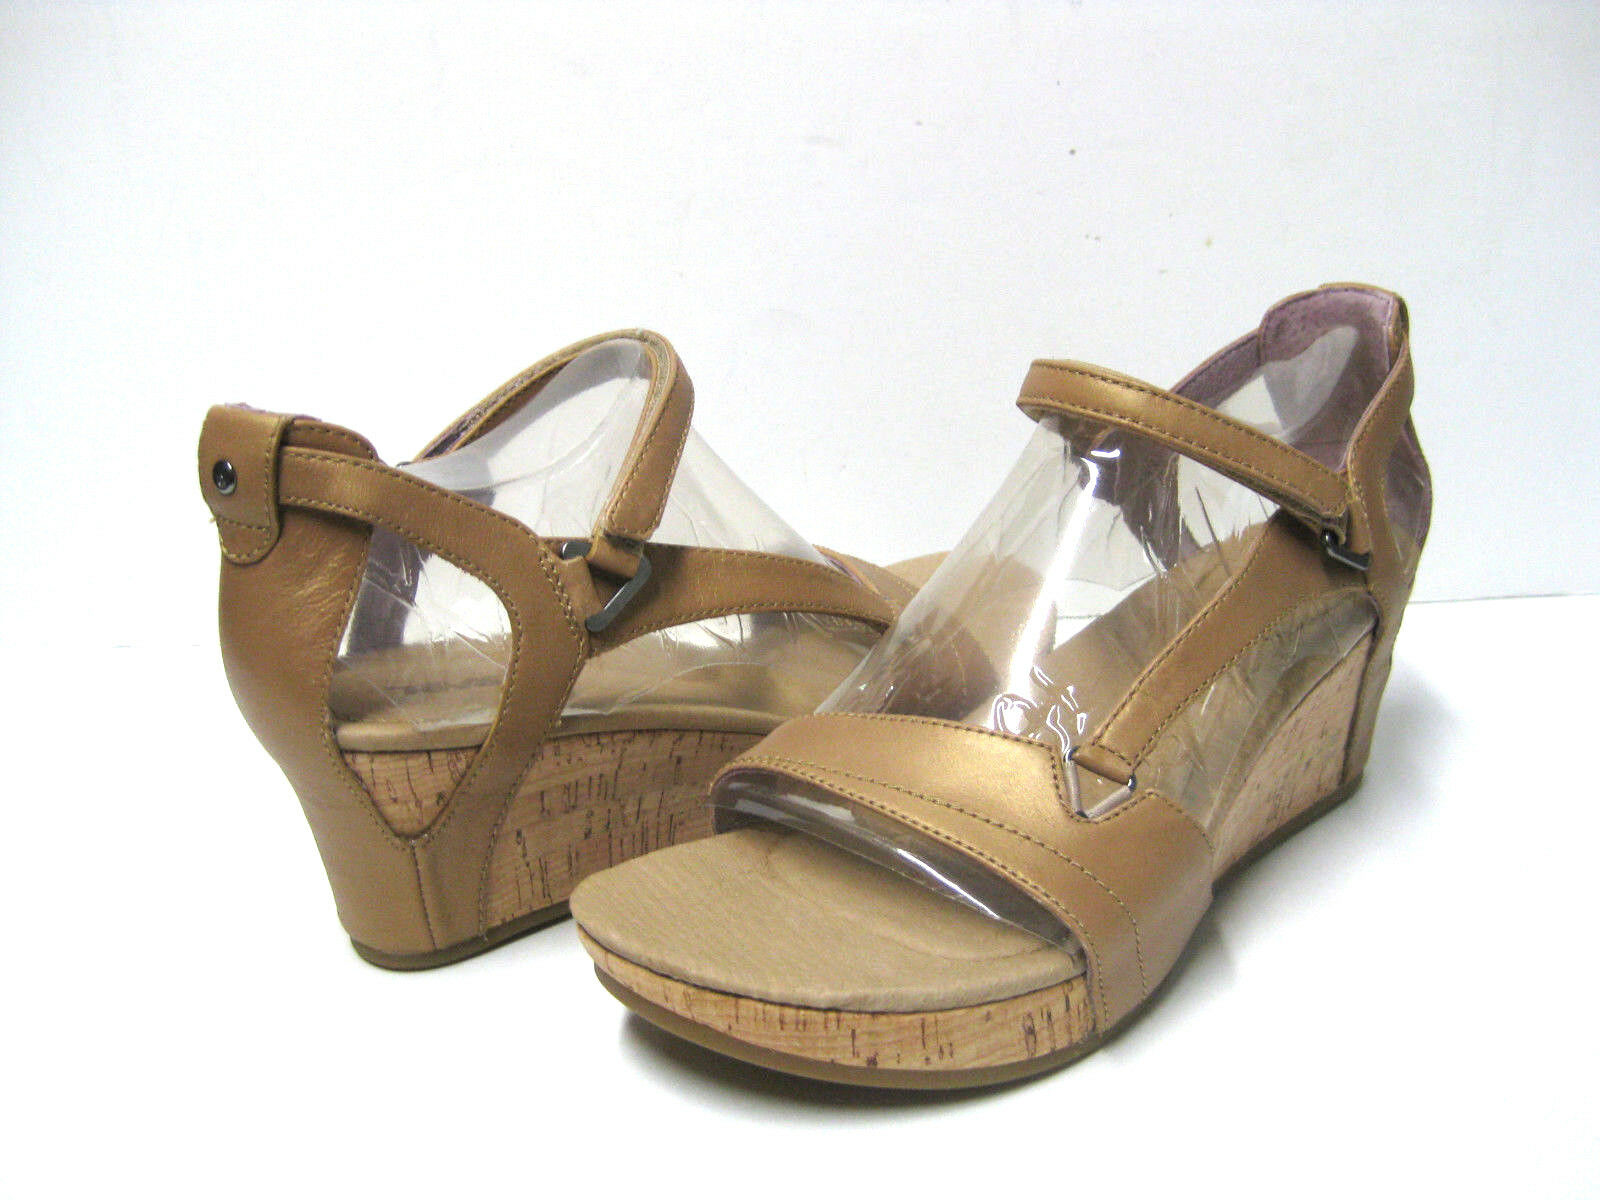 Teva Capri Wedge Pearlized Pearlized Pearlized Tan Women Sandals US7 b59d5e